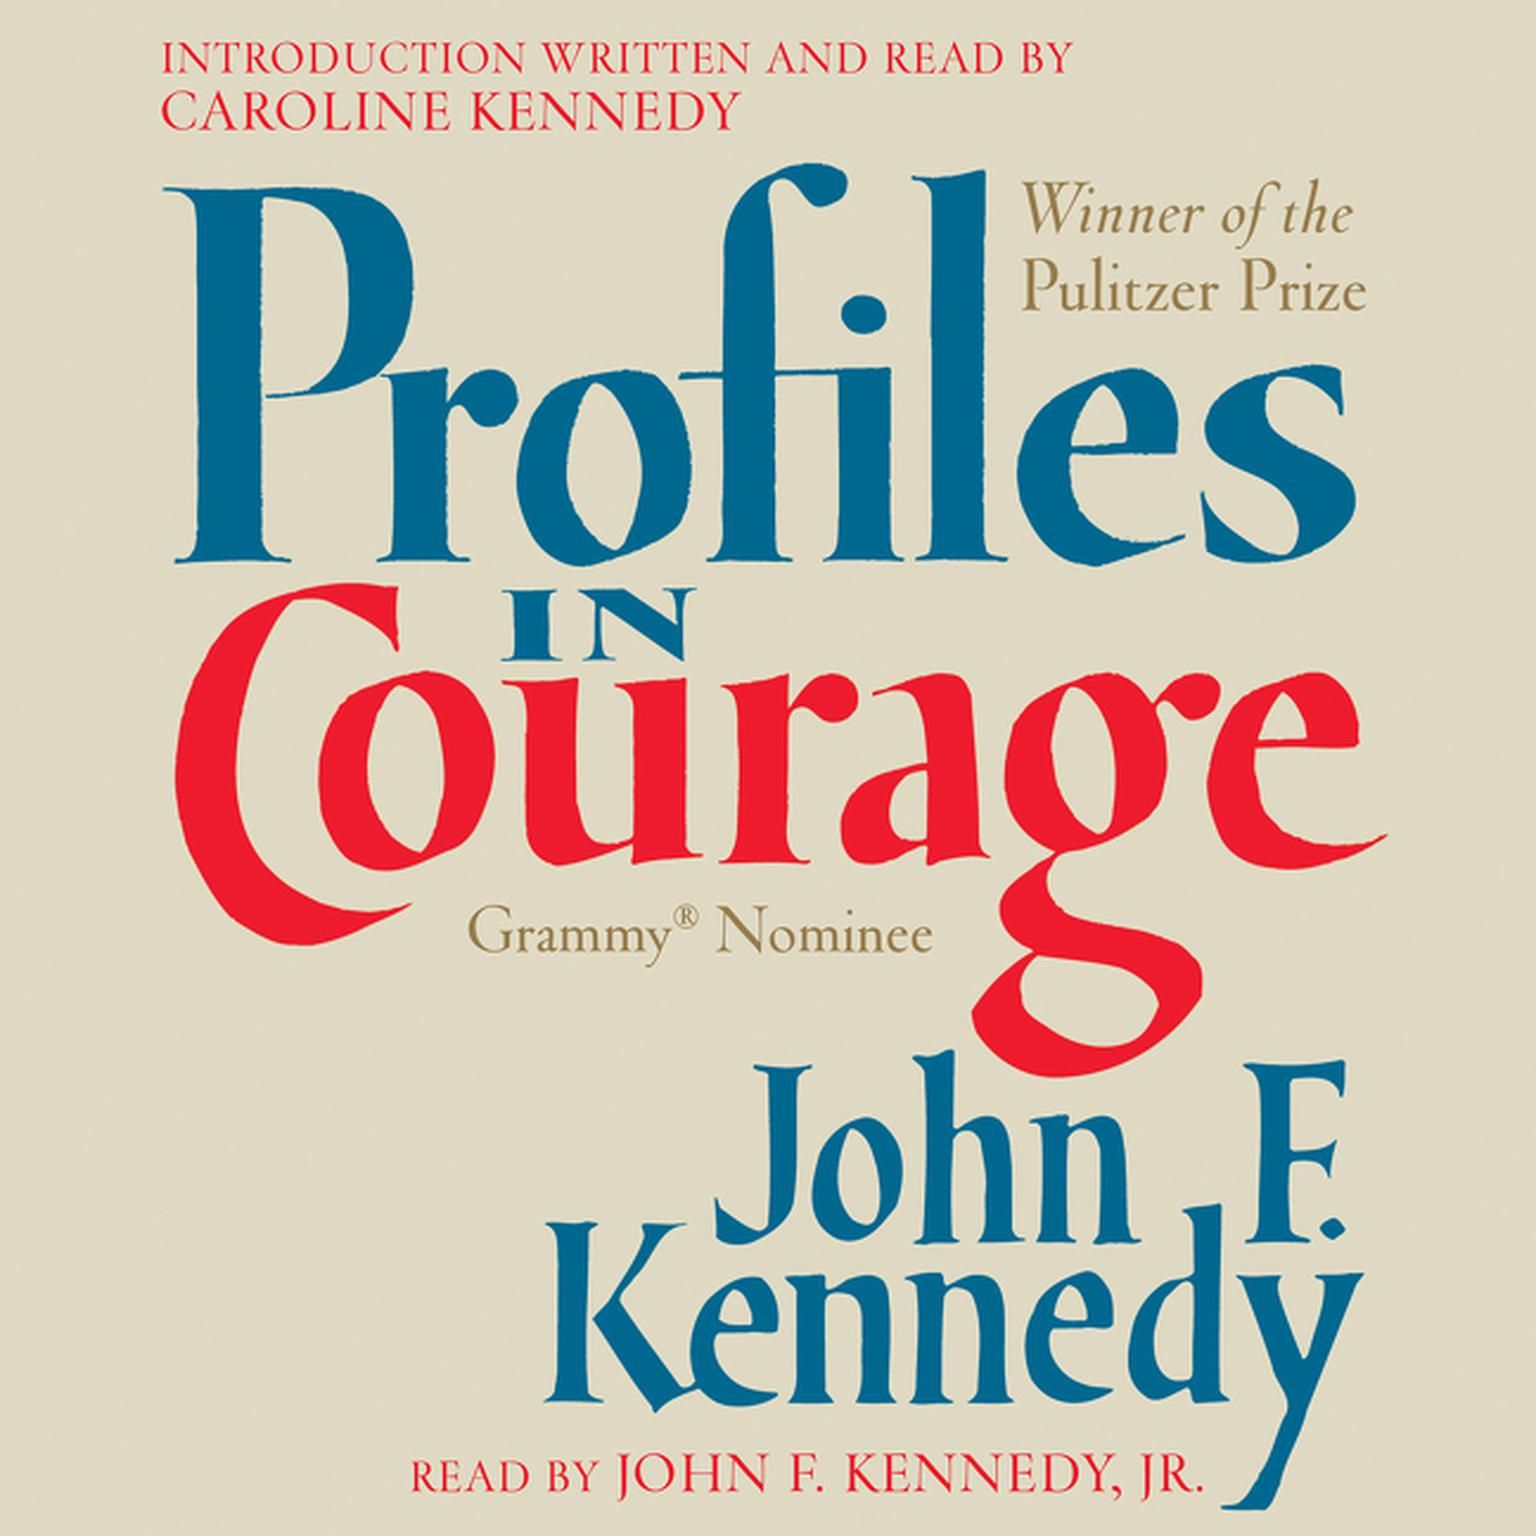 Profiles in Courage (Abridged) Audiobook, by John F. Kennedy